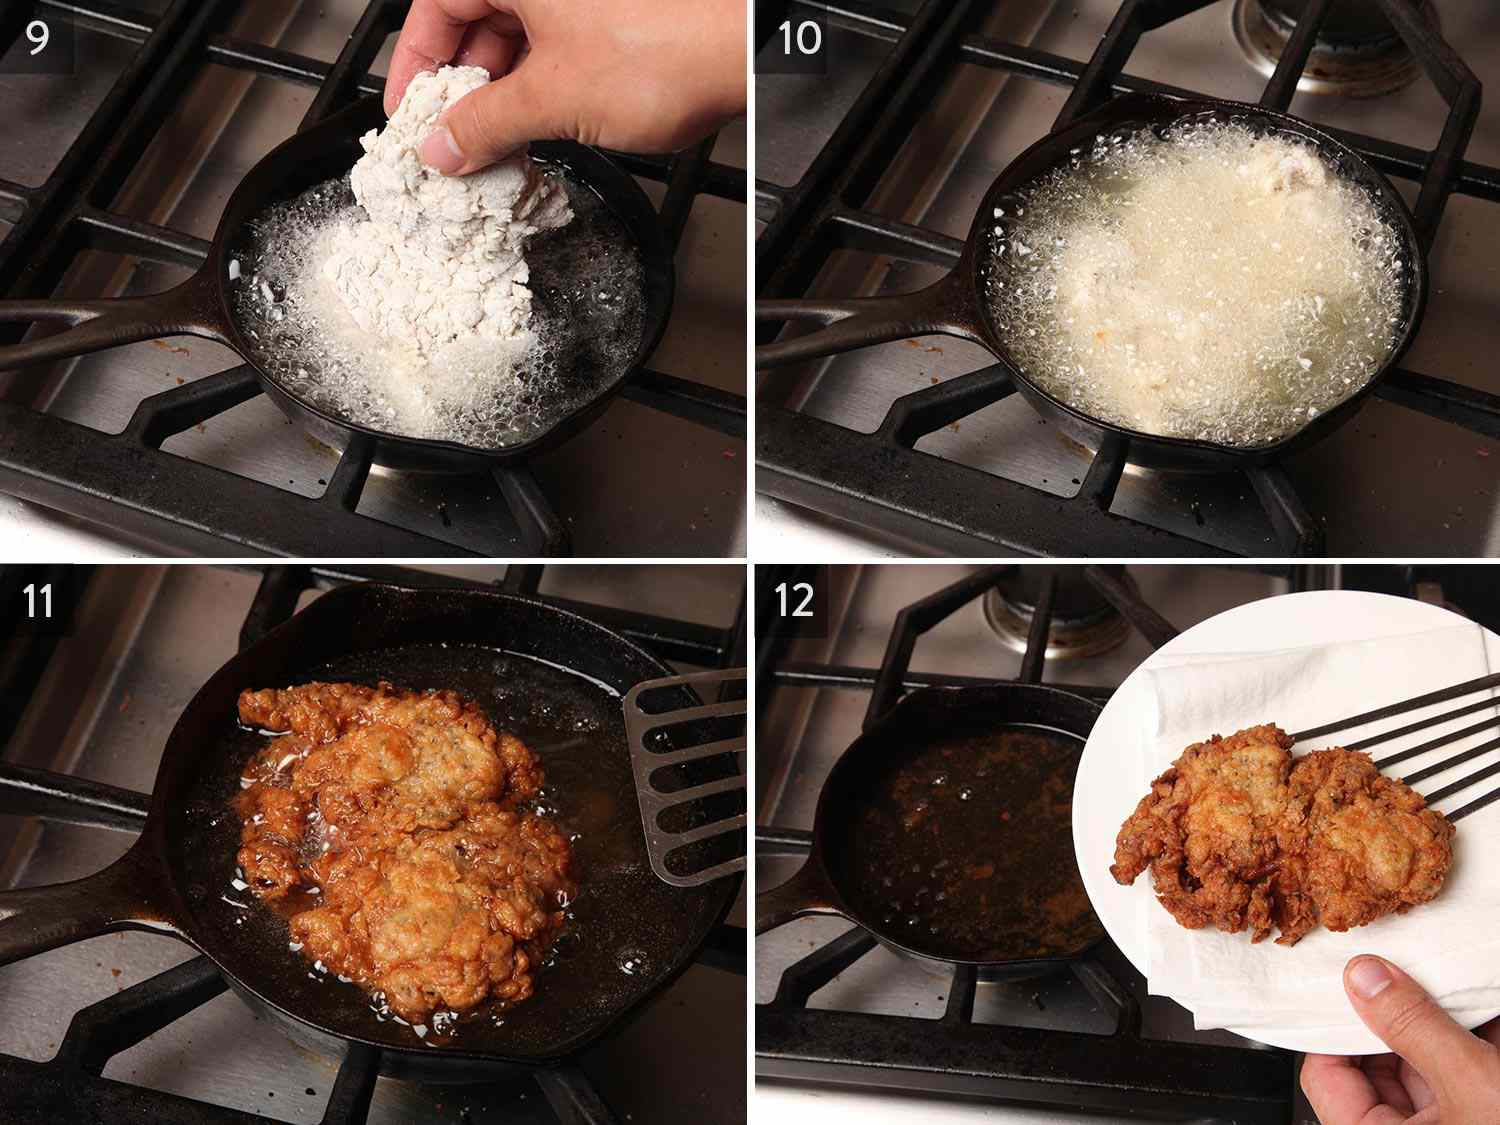 Photo collage showing adding one breaded chicken thigh to a small cast iron skillet of hot oil, frying in bubbling oil, flipping the chicken to show a golden brown exterior, and transferring to a paper towel-lined plate.